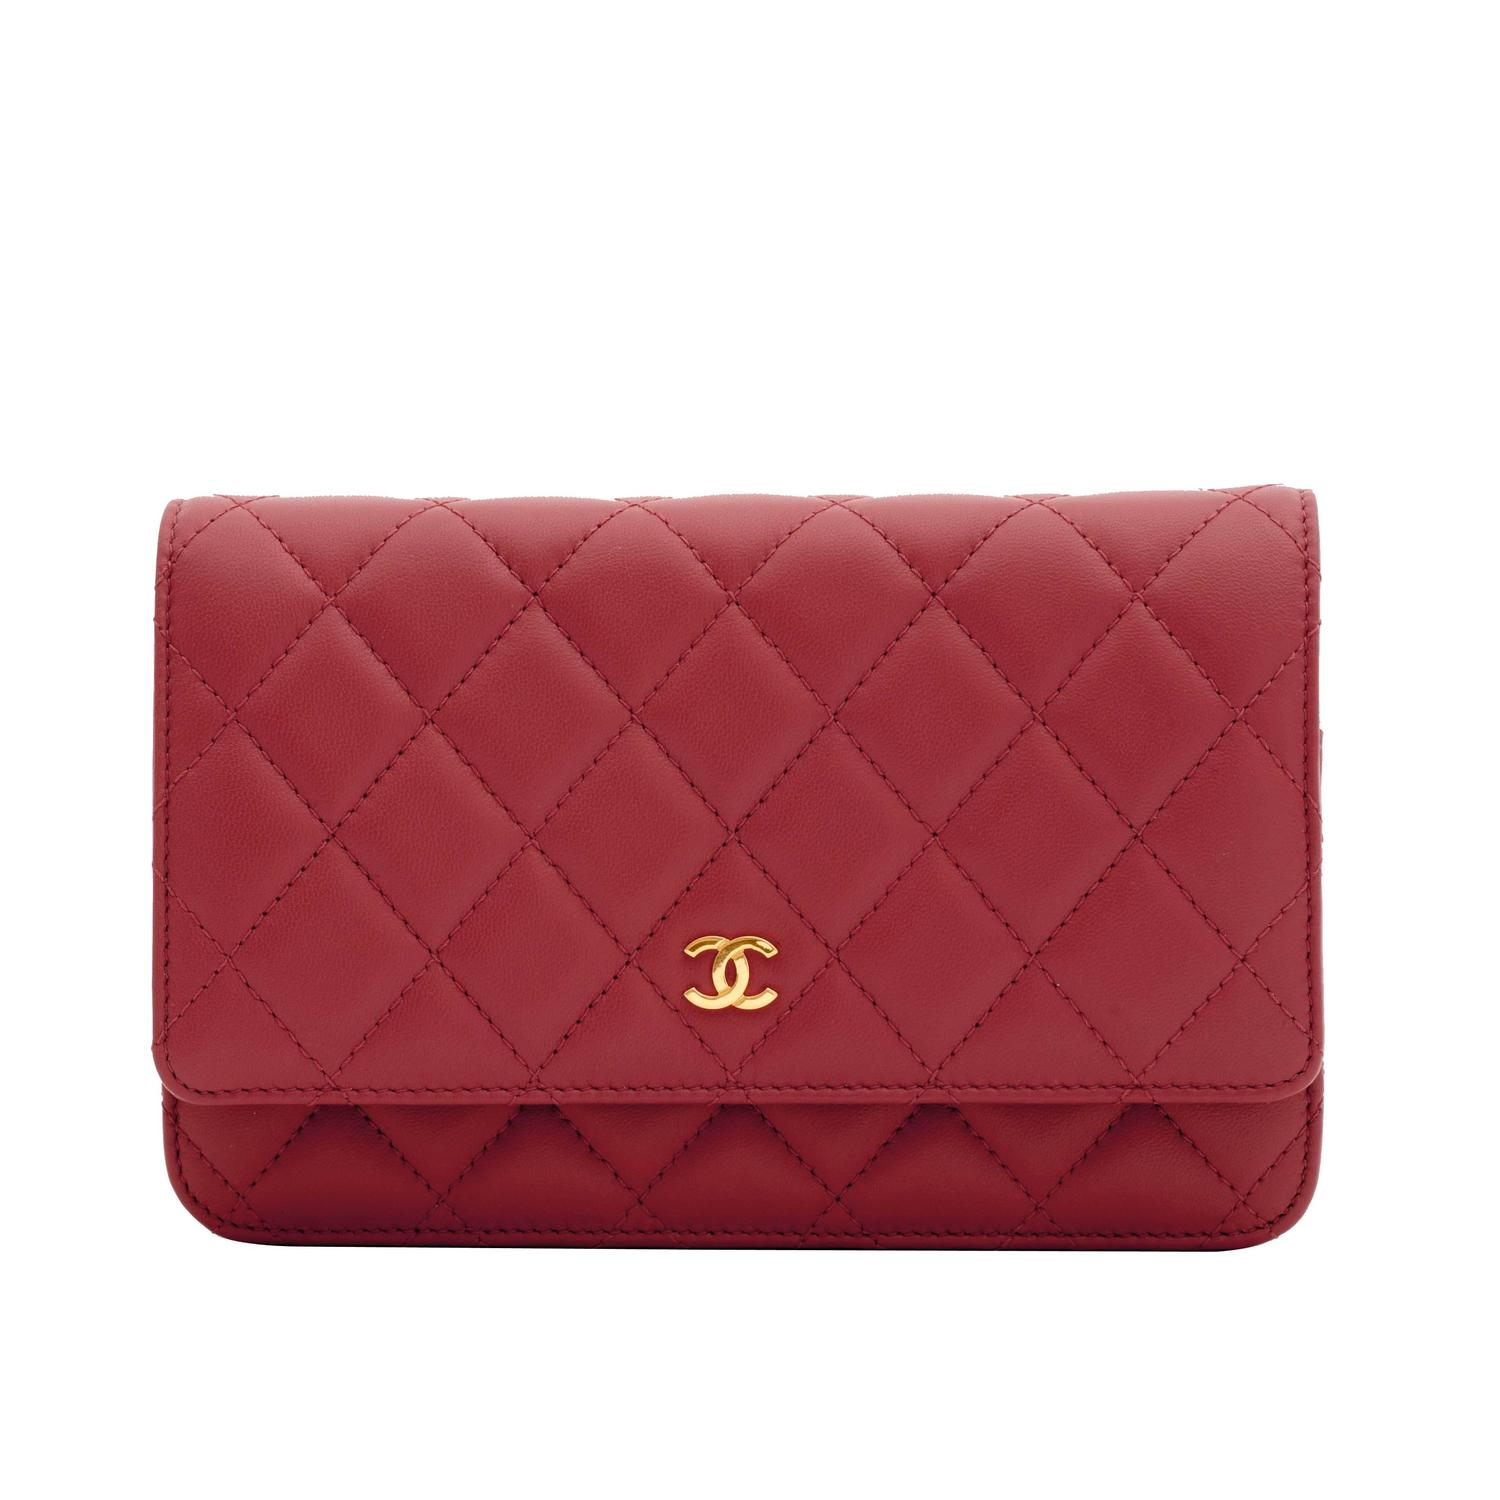 chanel wallet on chain woc quilted lambskin red gold at